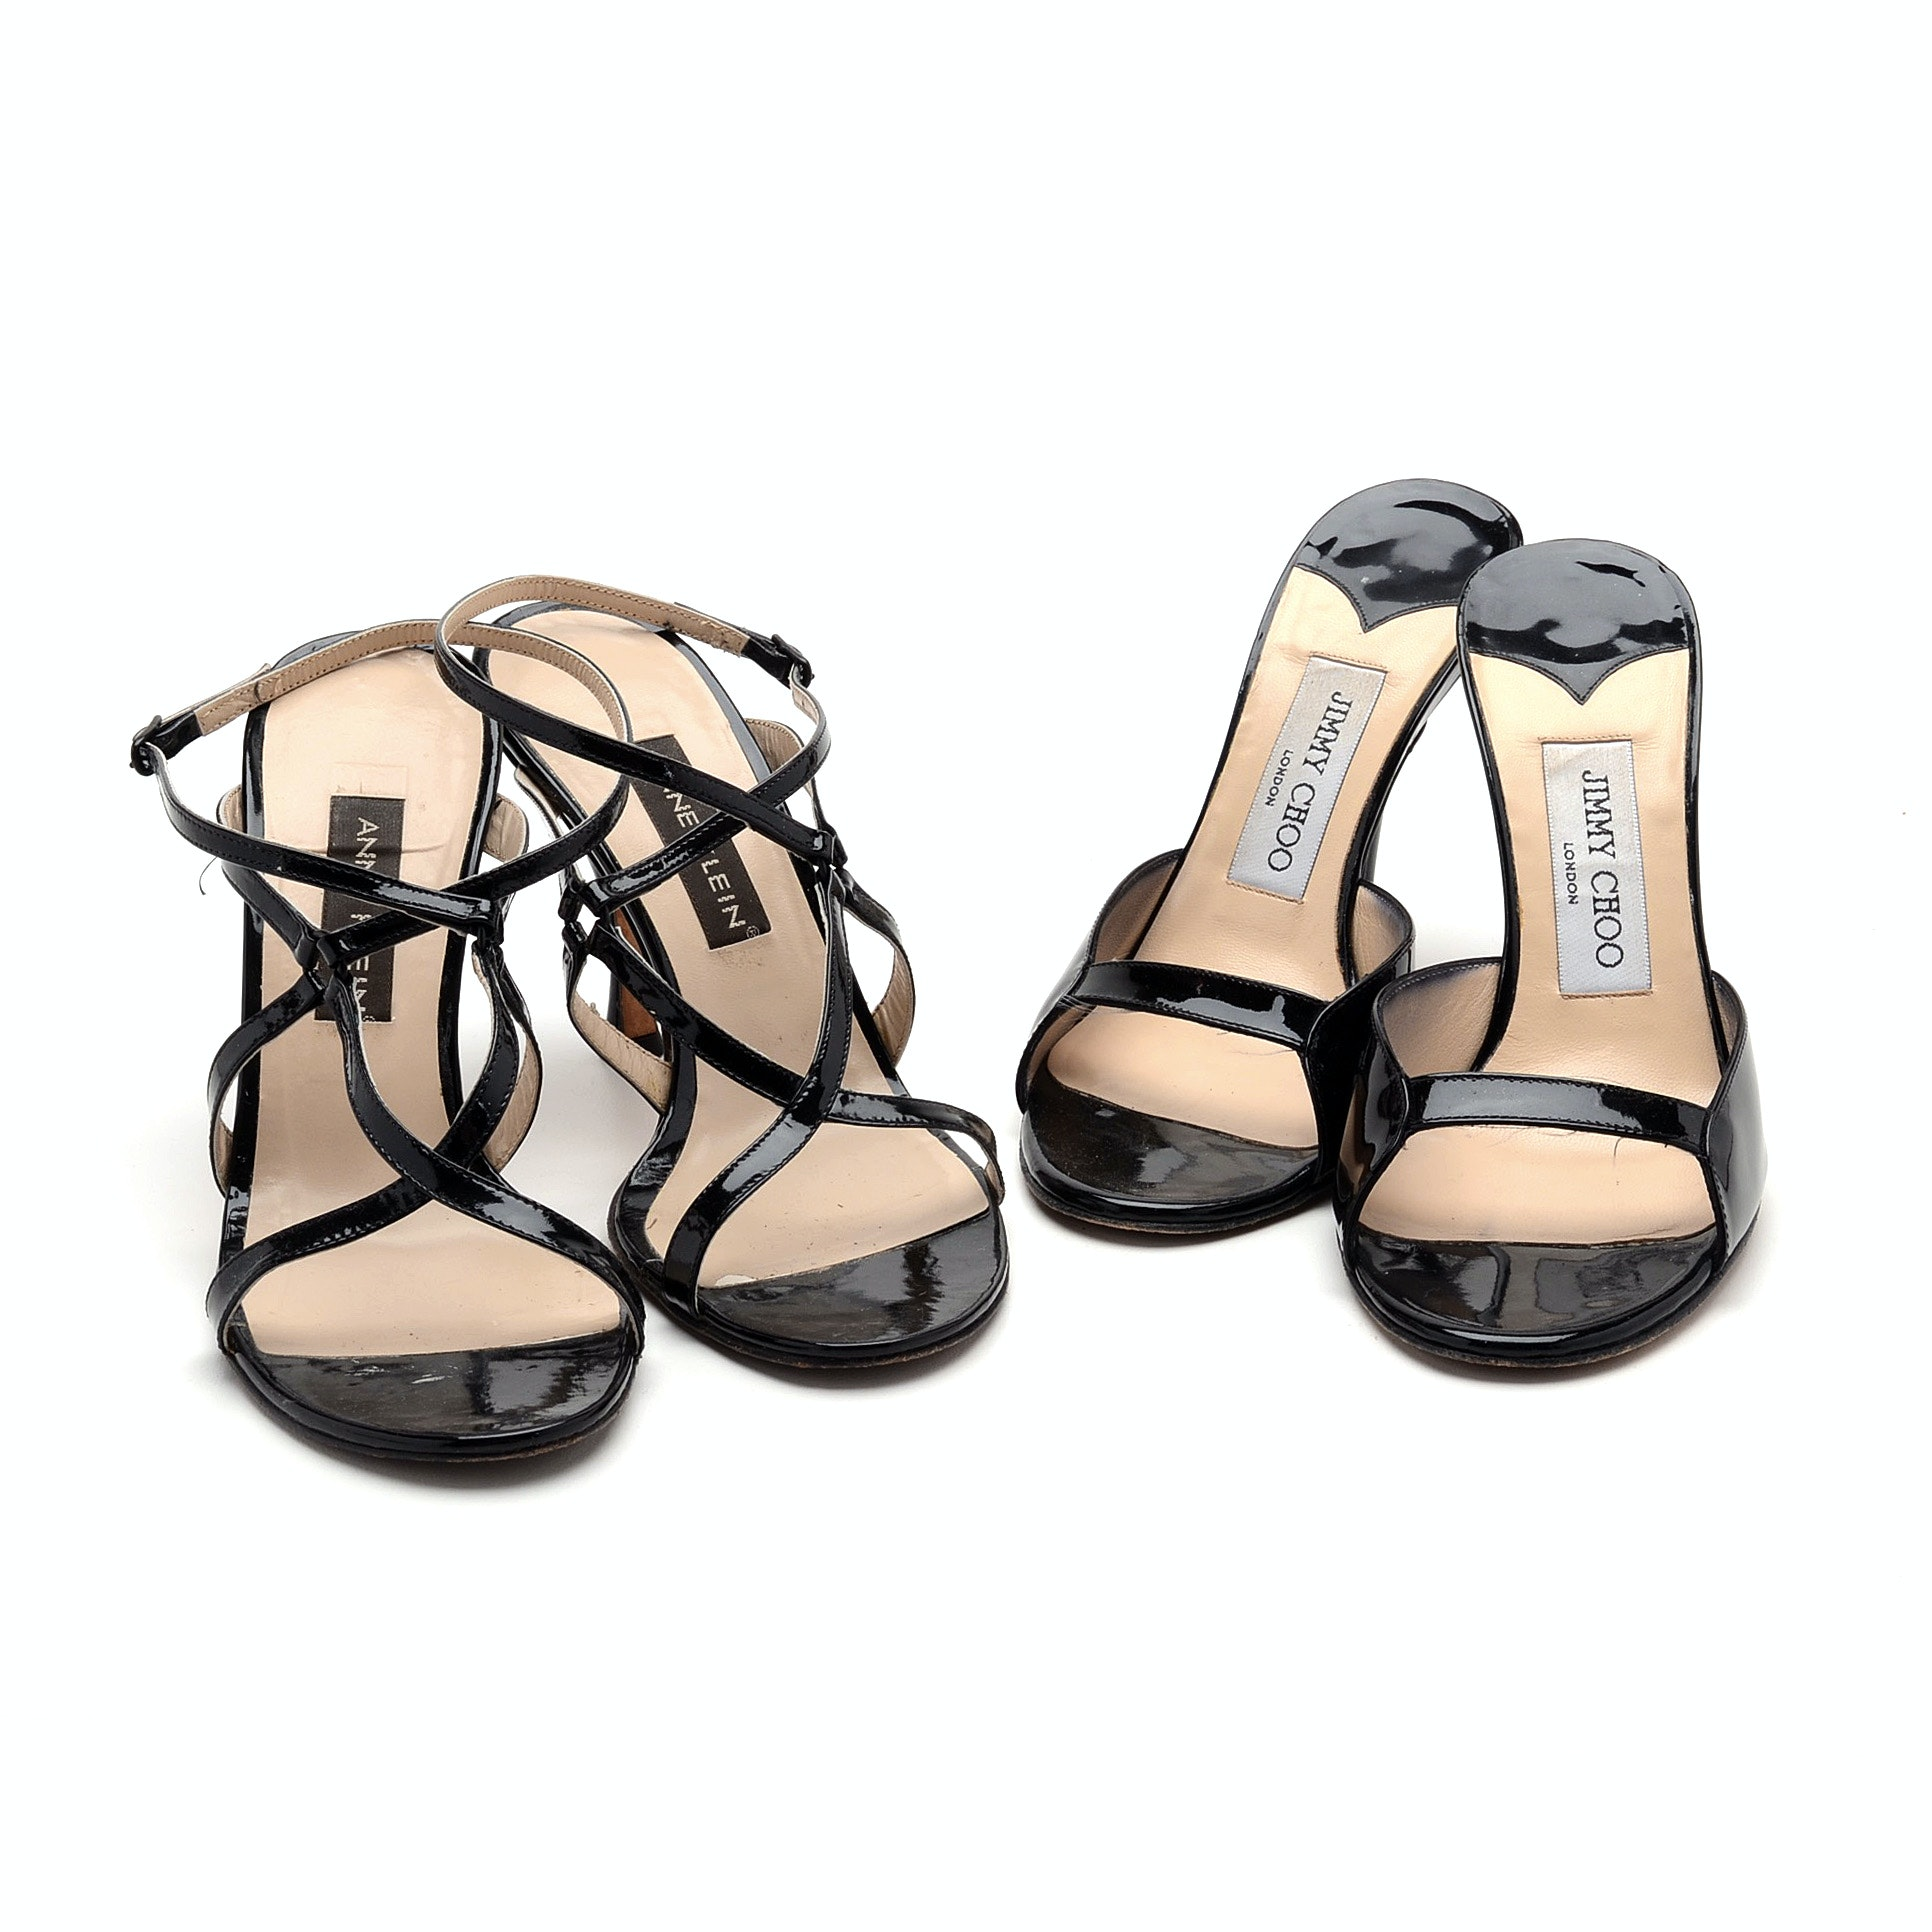 Jimmy Choo and Anne Klein Black Patent Leather Dress Sandals